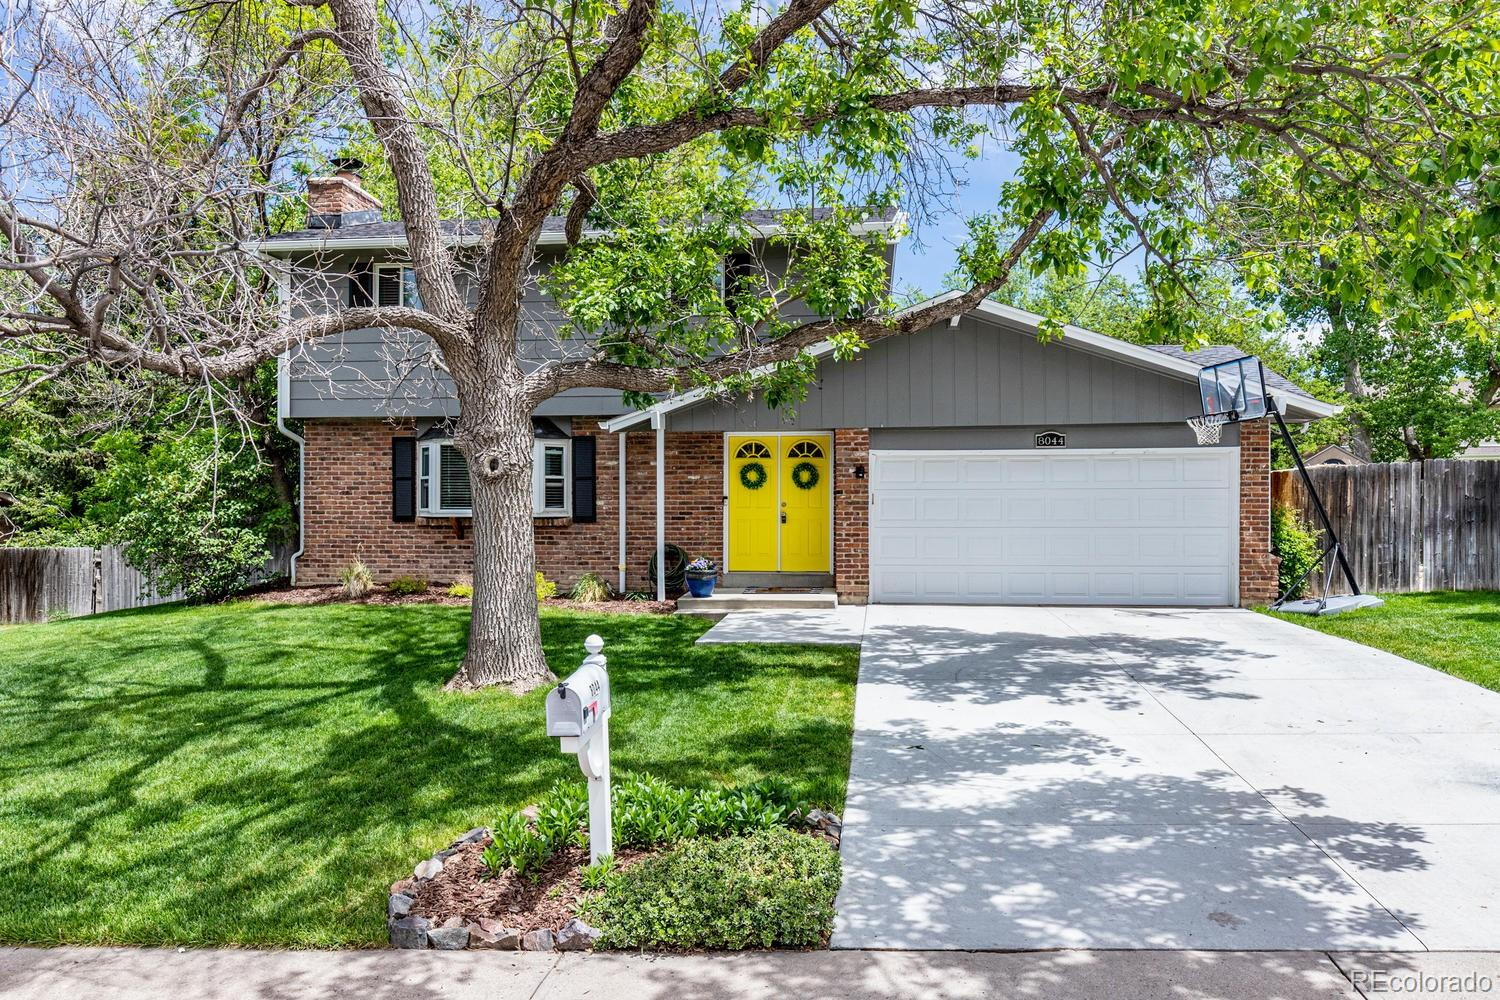 8044 S Newland Court Property Photo - Littleton, CO real estate listing